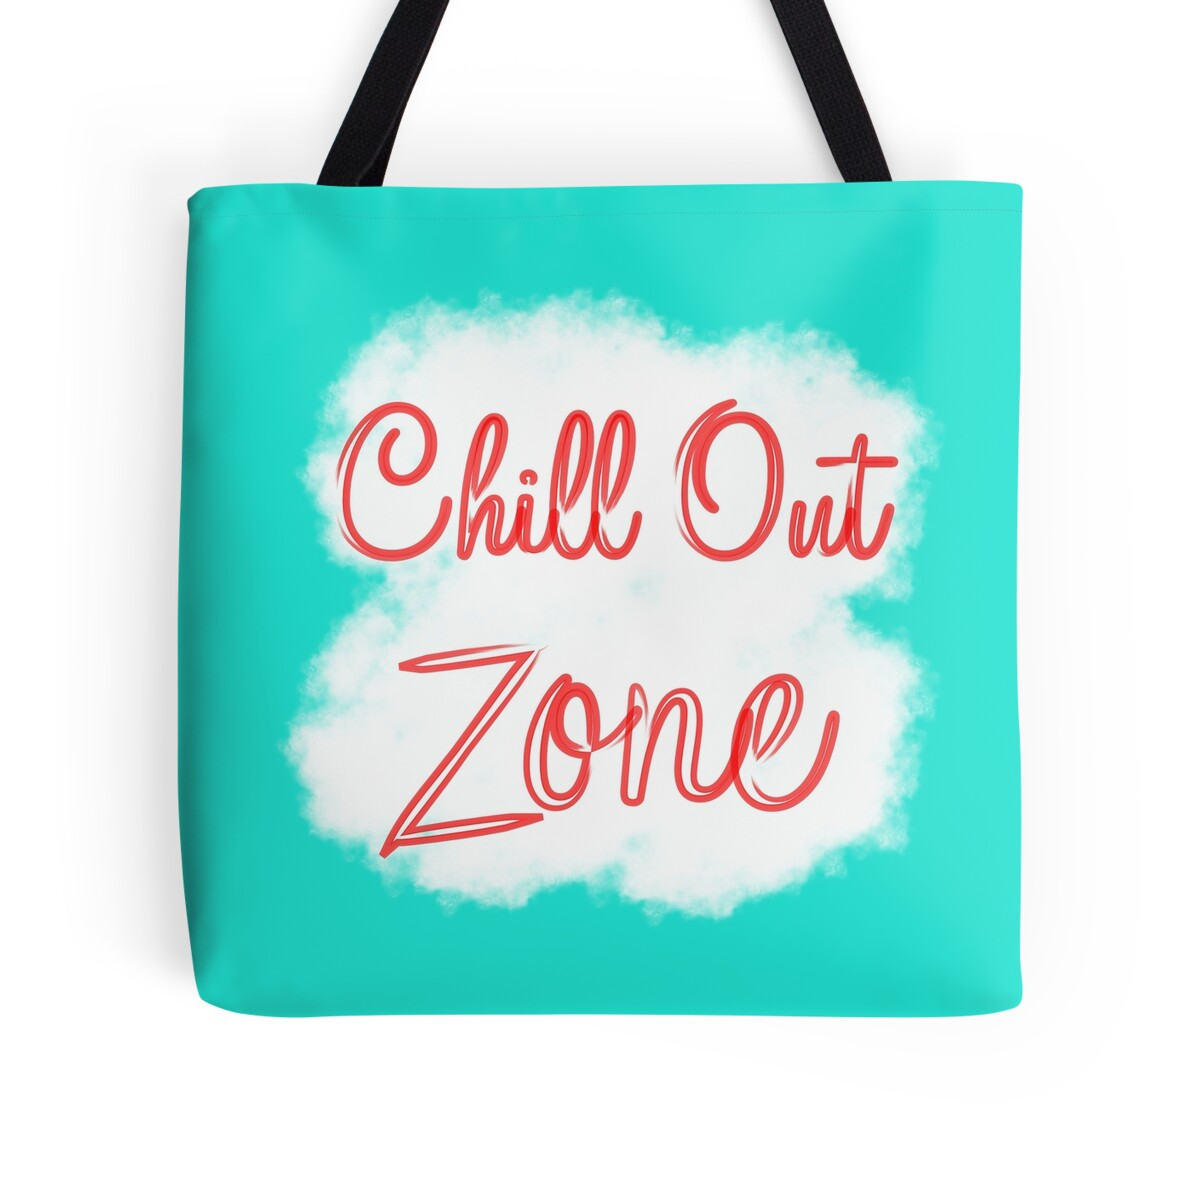 chill out zone tote bags by artification redbubble. Black Bedroom Furniture Sets. Home Design Ideas